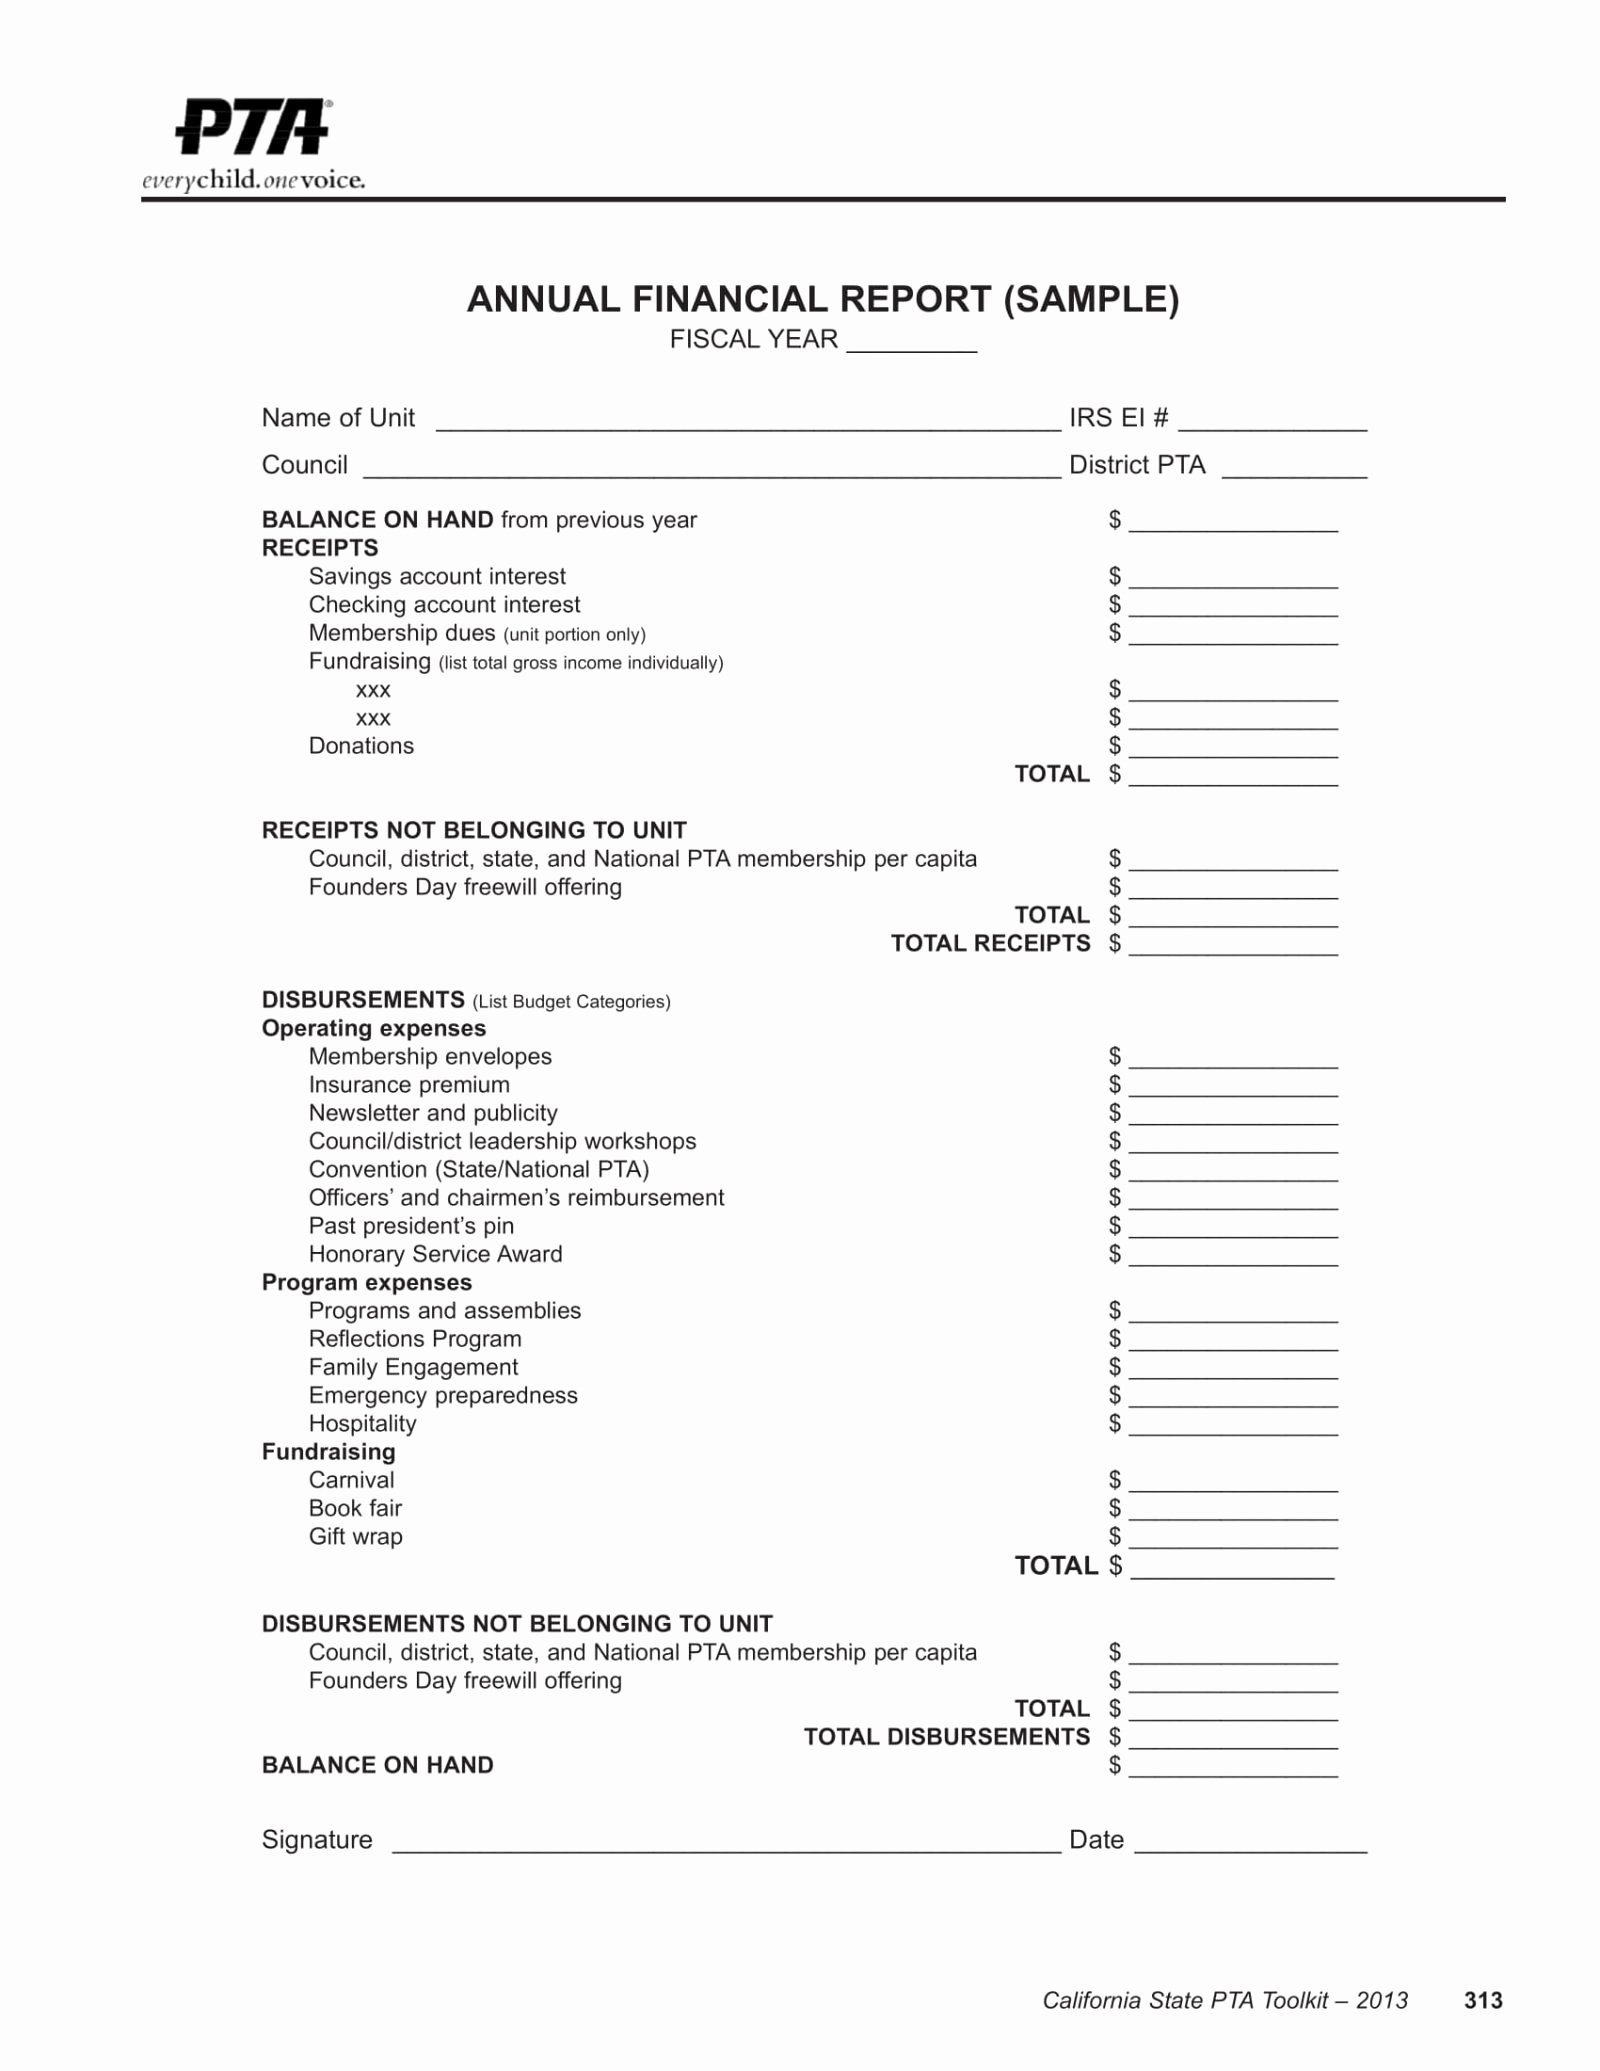 Financial Report Template Excel Elegant Financial Report Example Excel Free Churchemplatesemplate